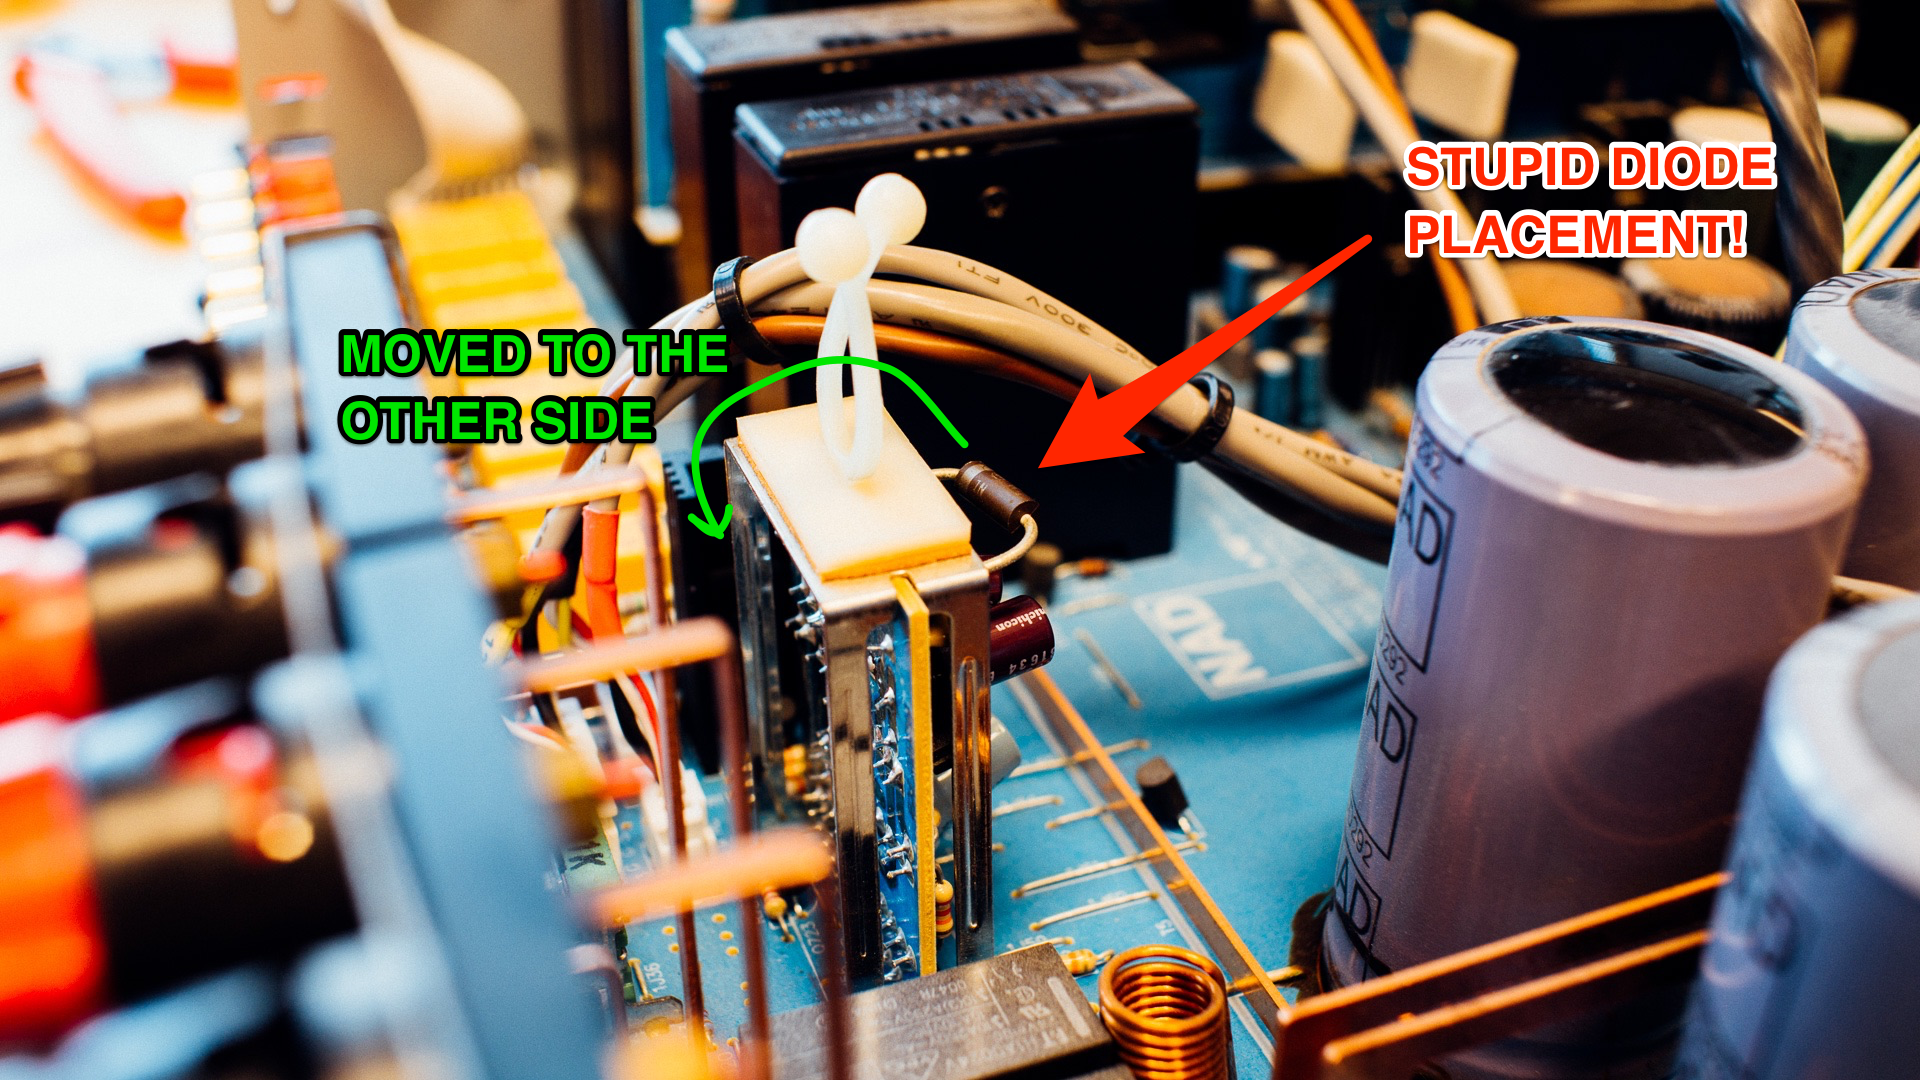 Repairing A Nad C370 Amplifier The Slow Start Protection Module Loudspeaker With Soft We Moved Rather Stupidly Placed Zener Diode To Other Side Of Pcb So It Has Harder Time Heating Up And Damaging Necessary